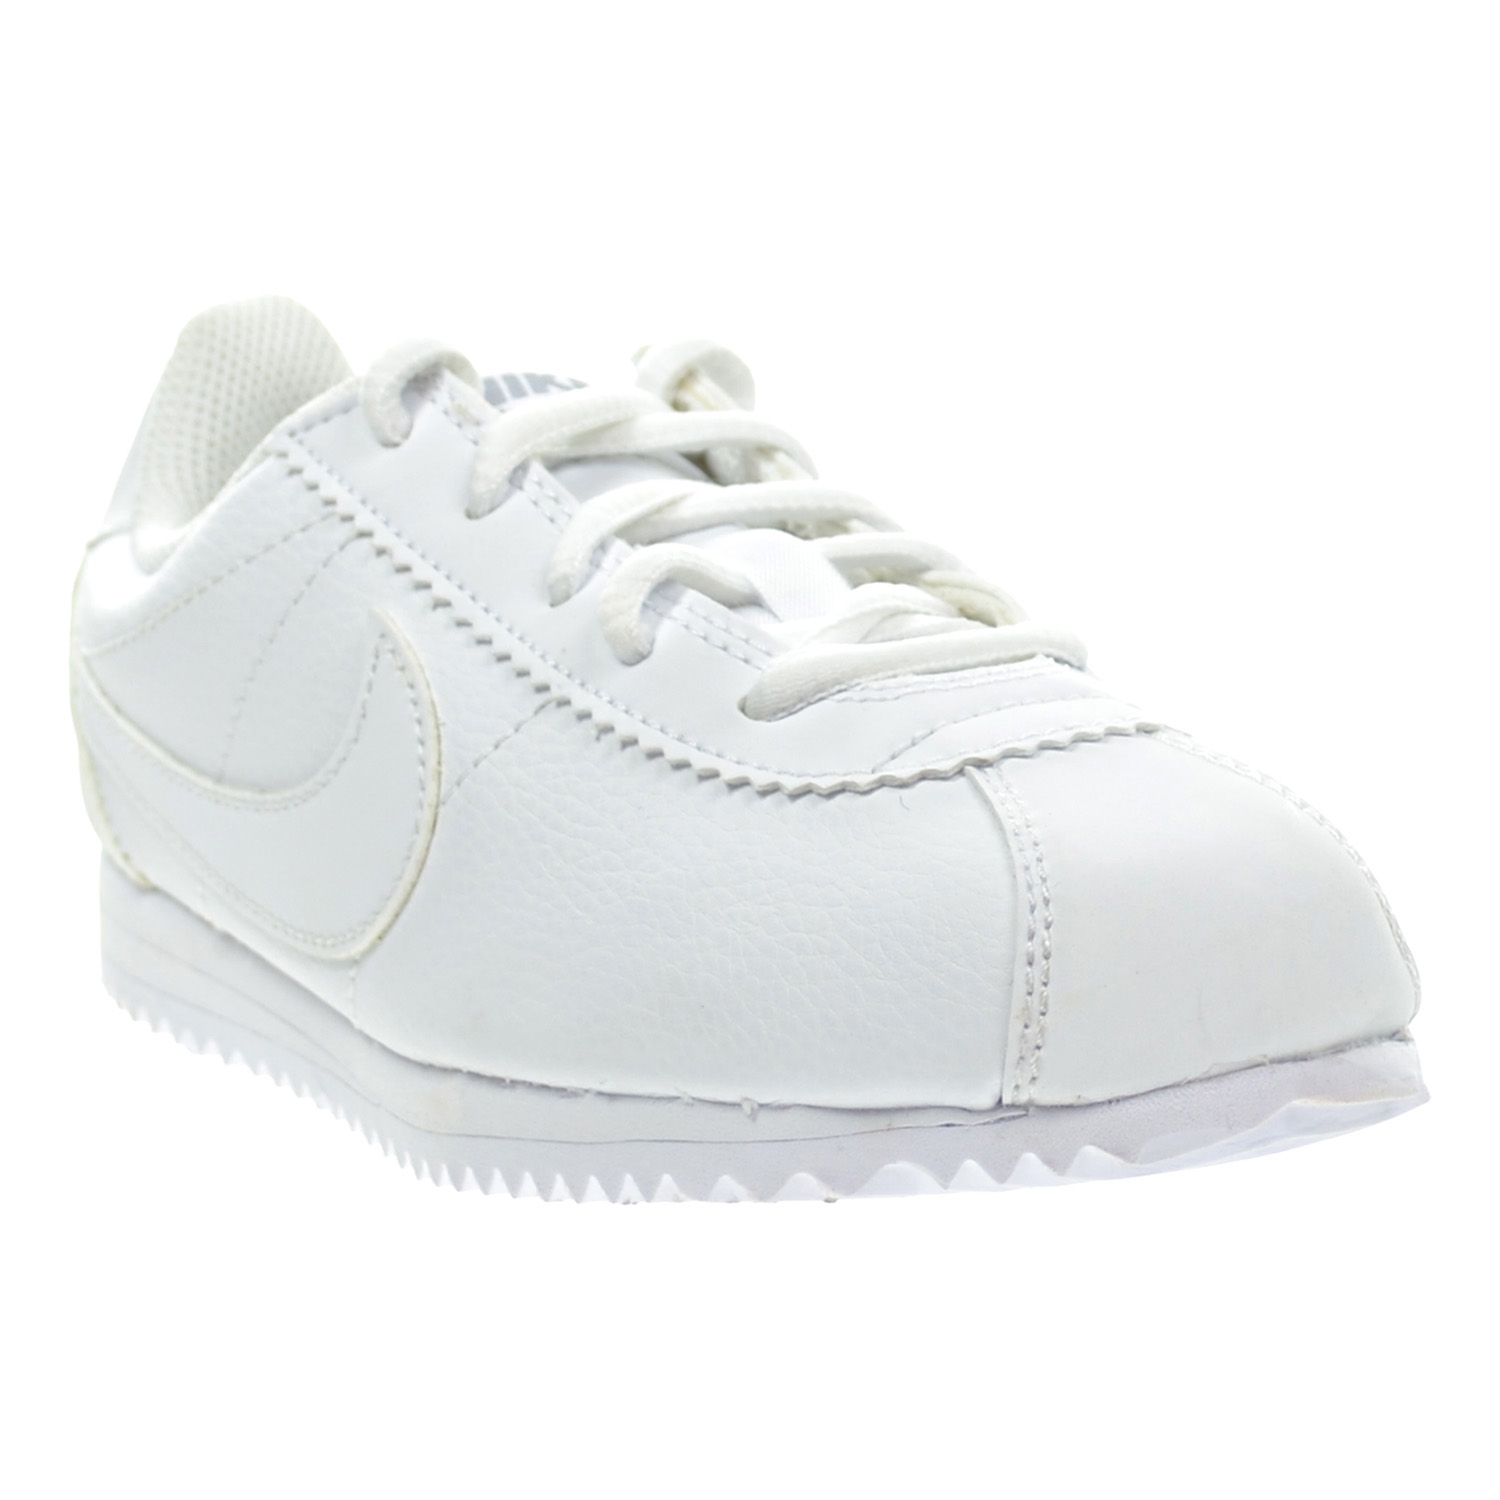 Nike Cortez (PS) Little Kid's Shoes White/Wolf Grey/White 749504-100